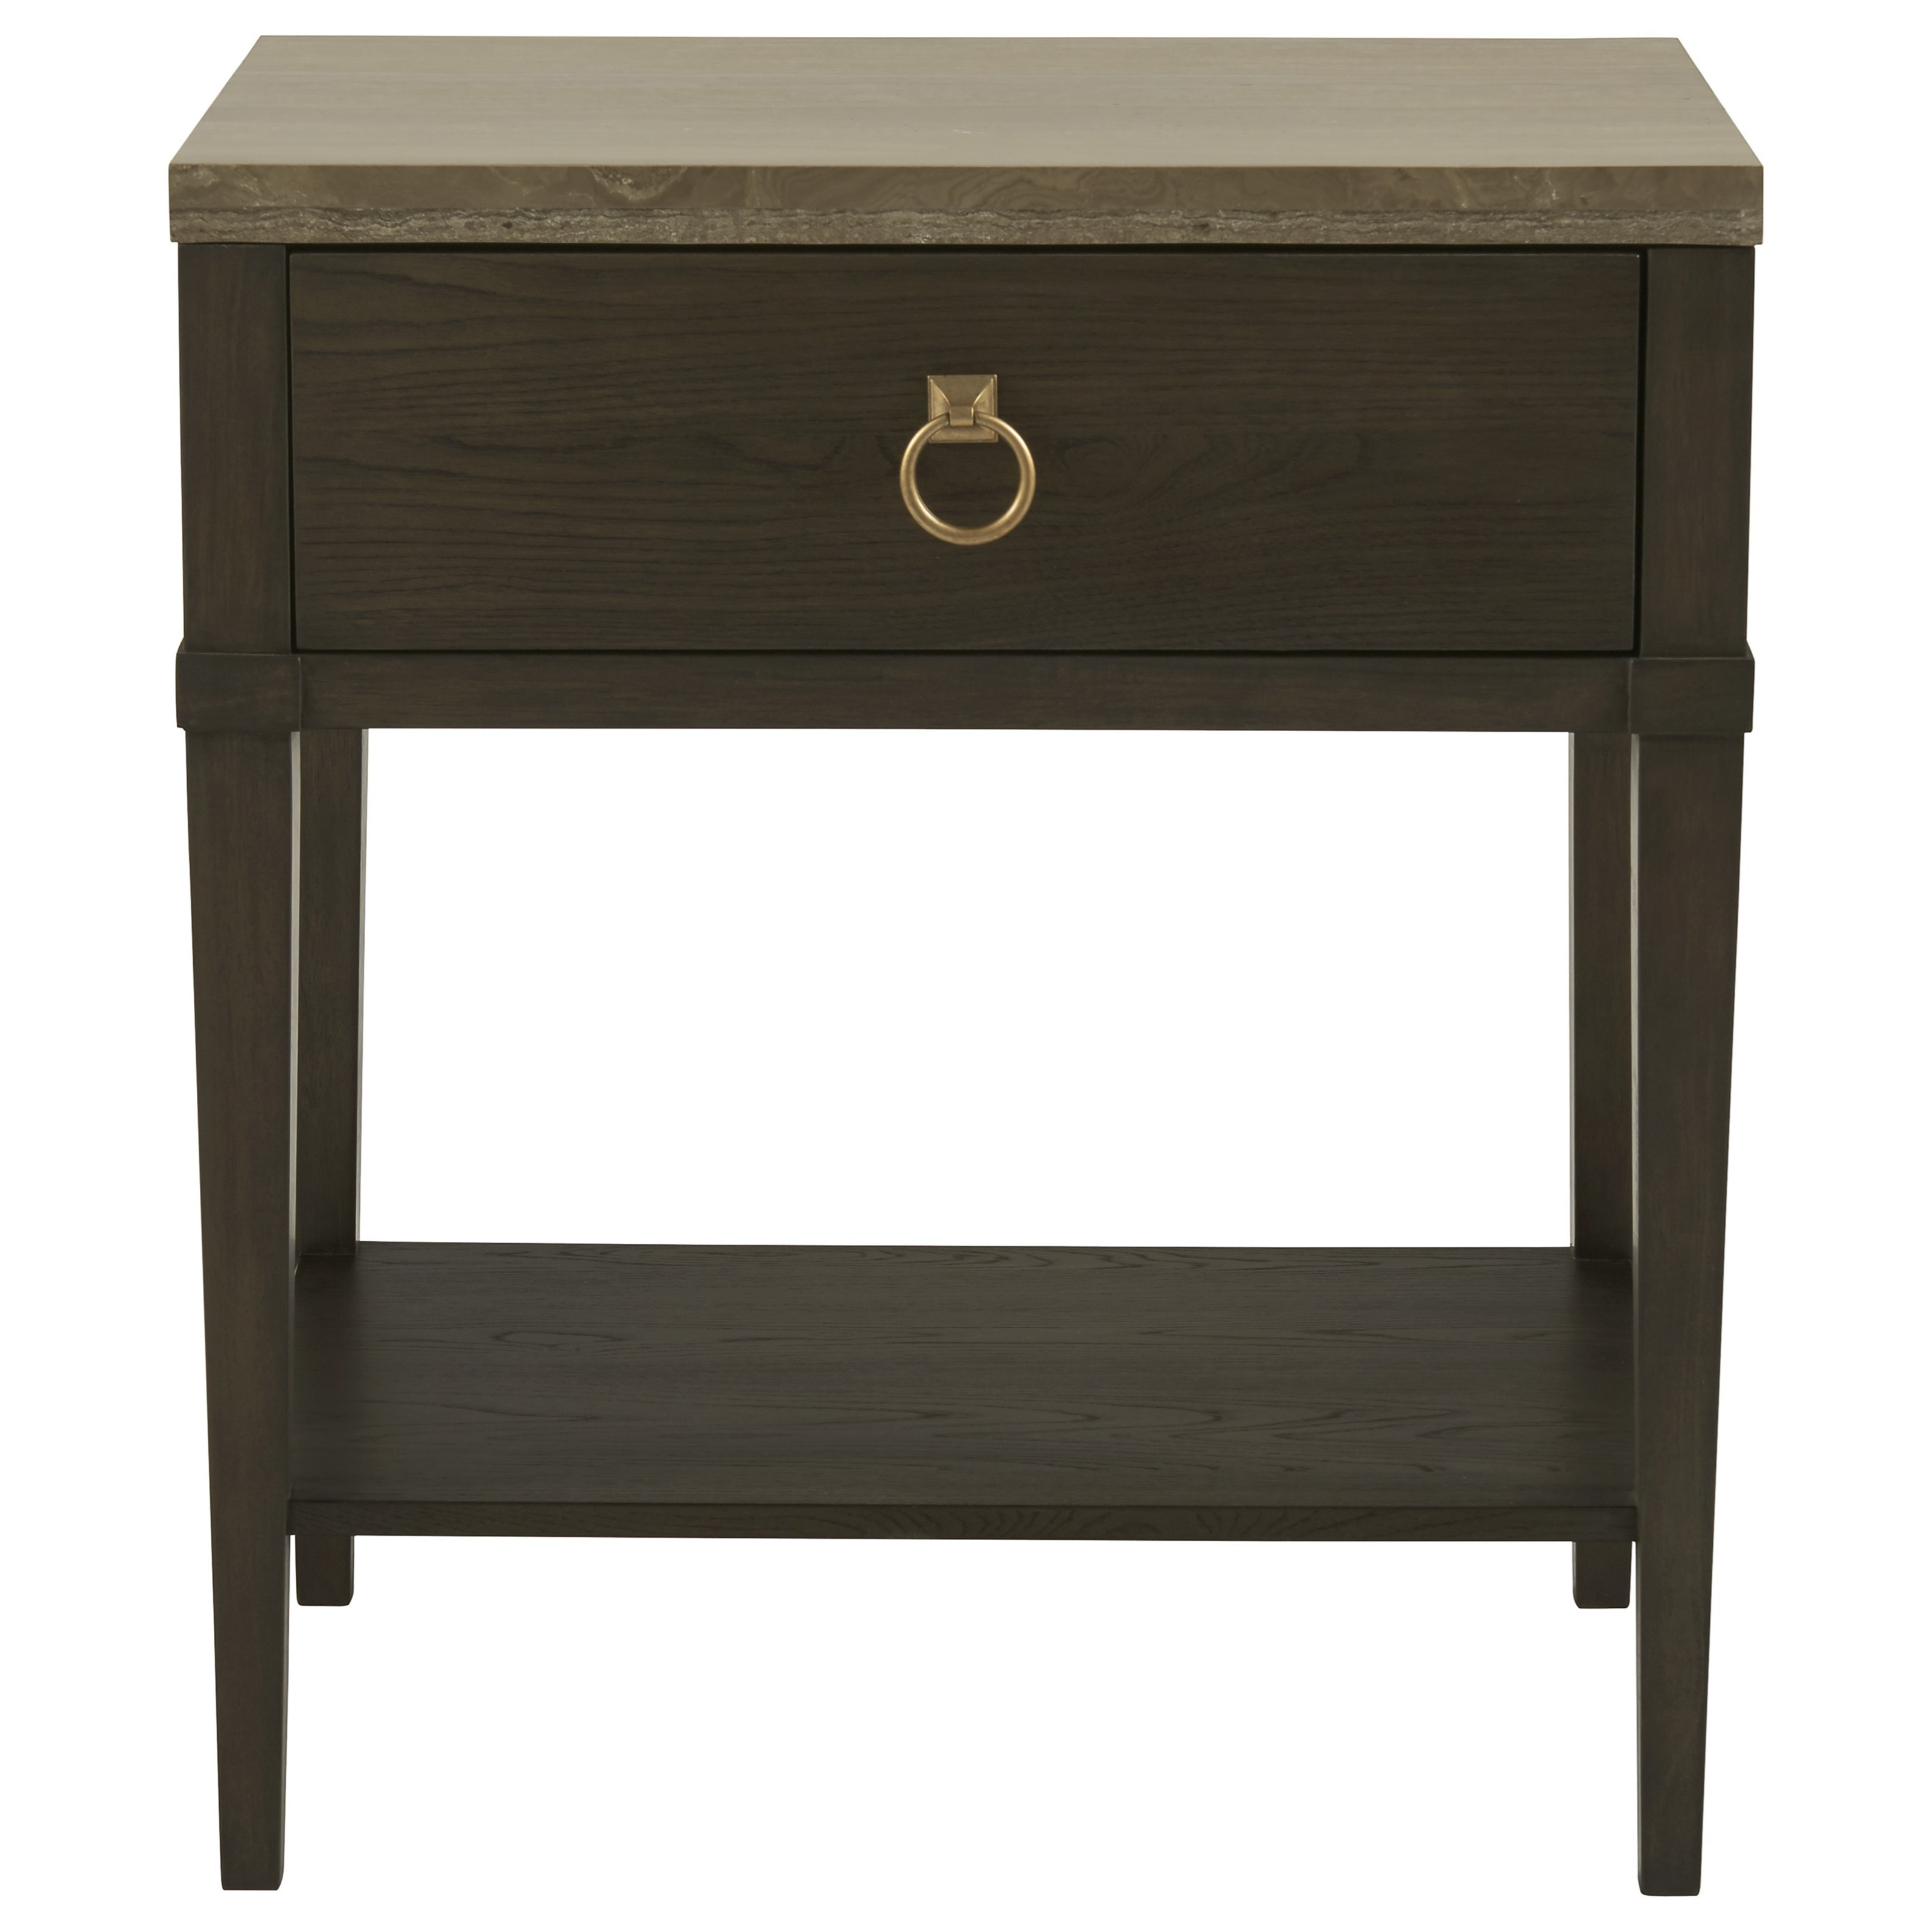 Universal Soliloquy 788350 1 Drawer Night Table With Stone